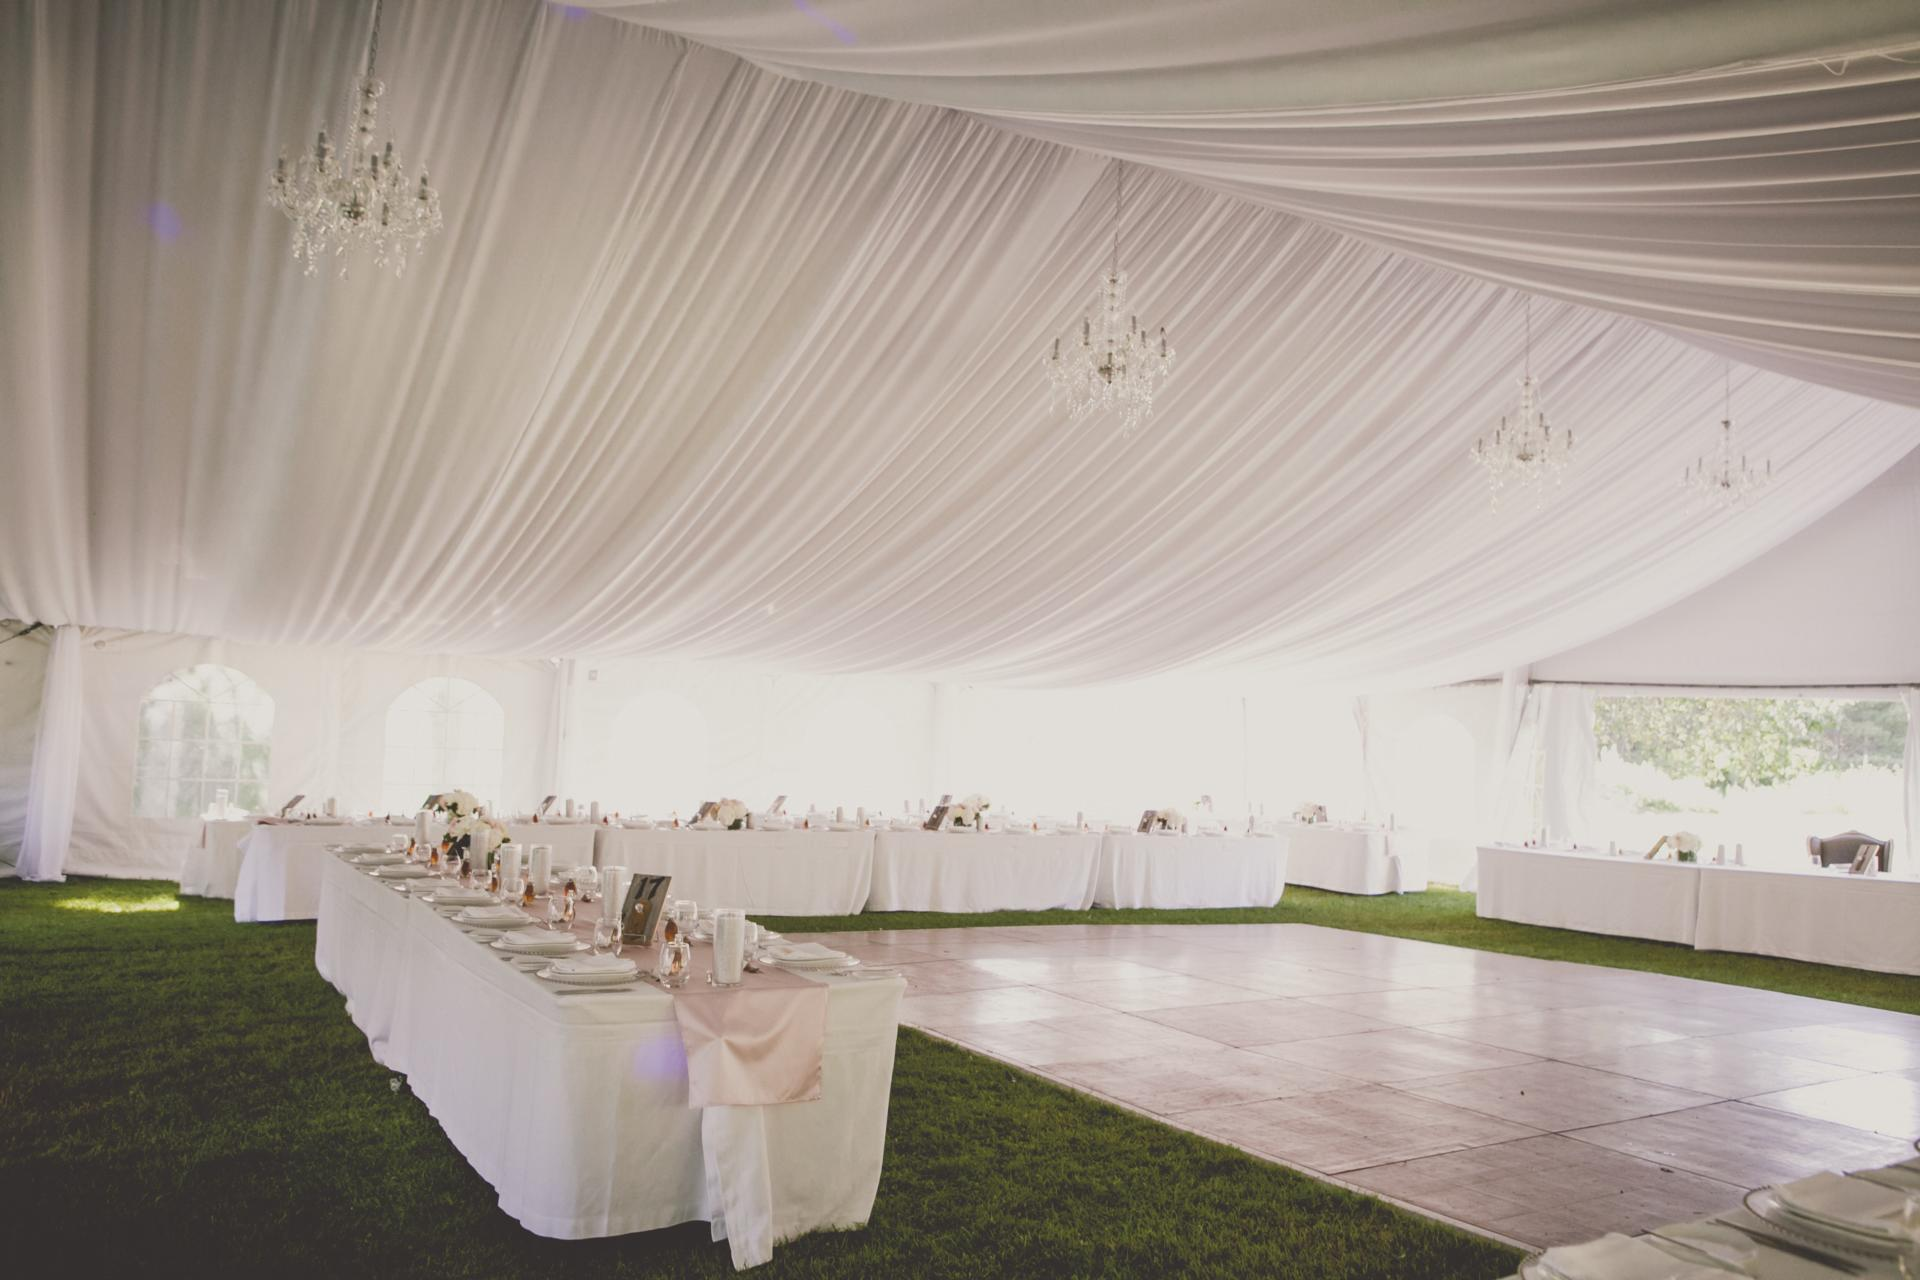 Farm Barn Wedding Tent Draping Decor